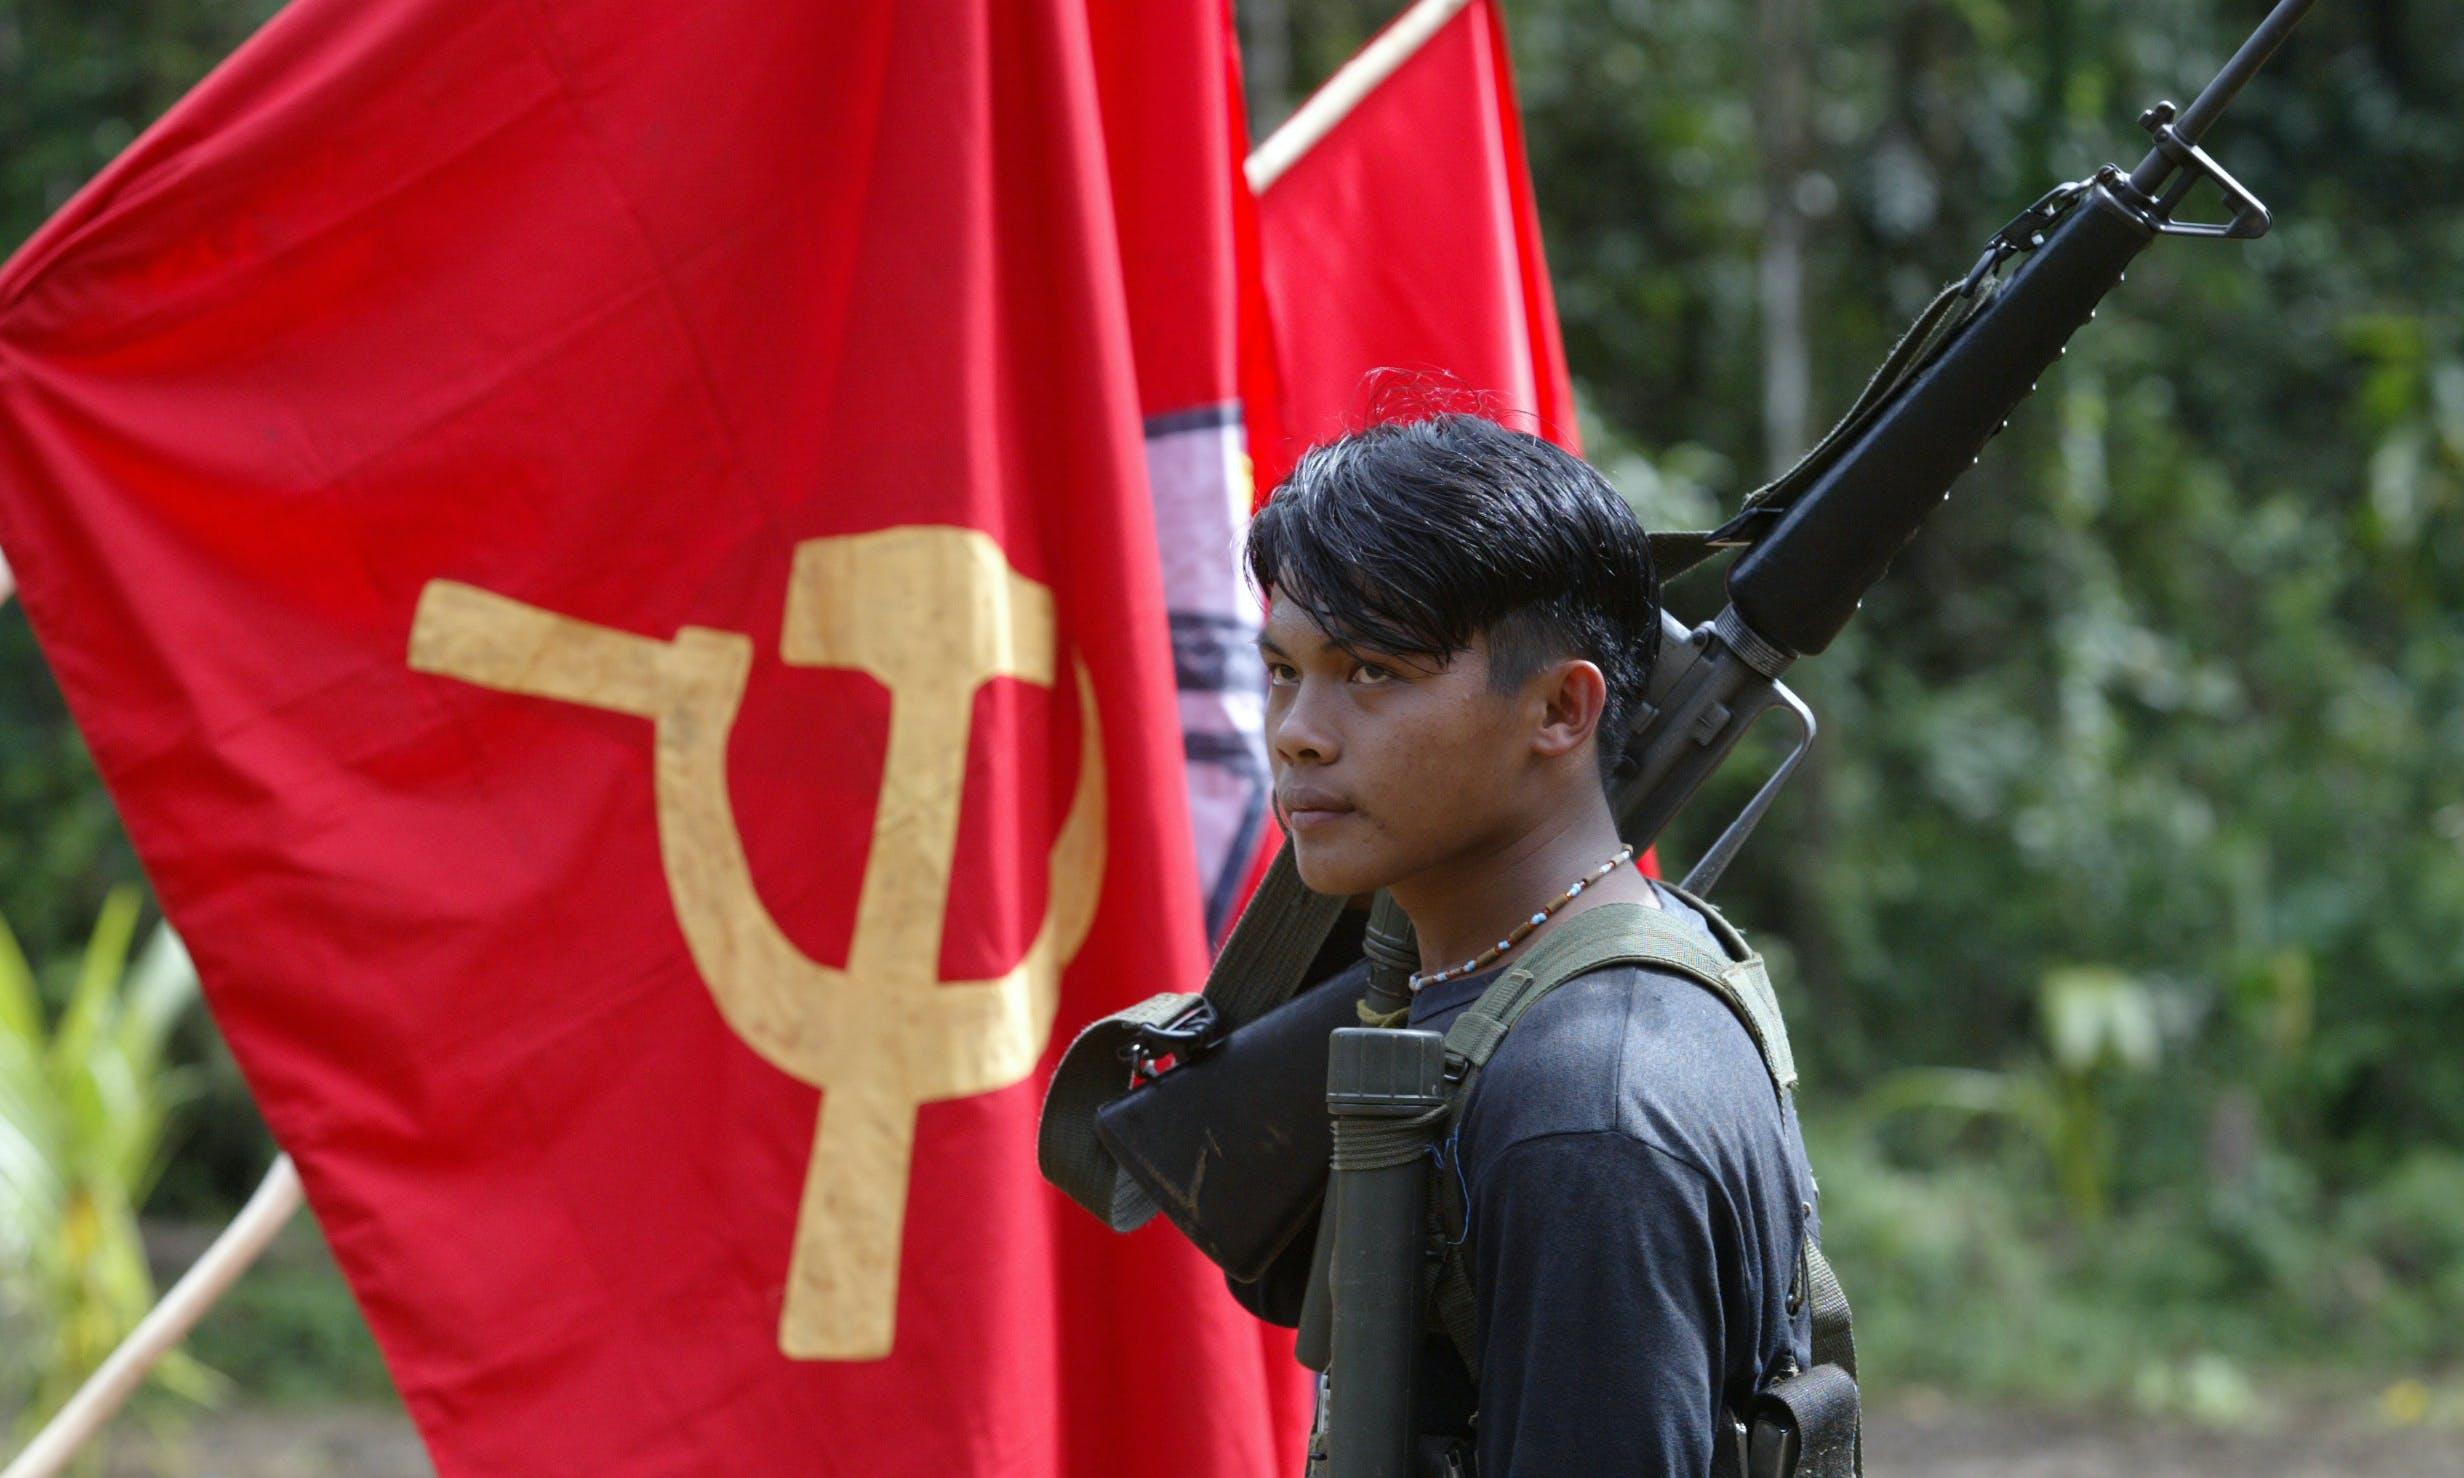 The Maoist Guerrillas of the Philippines Are Now Pointing Their Guns at China